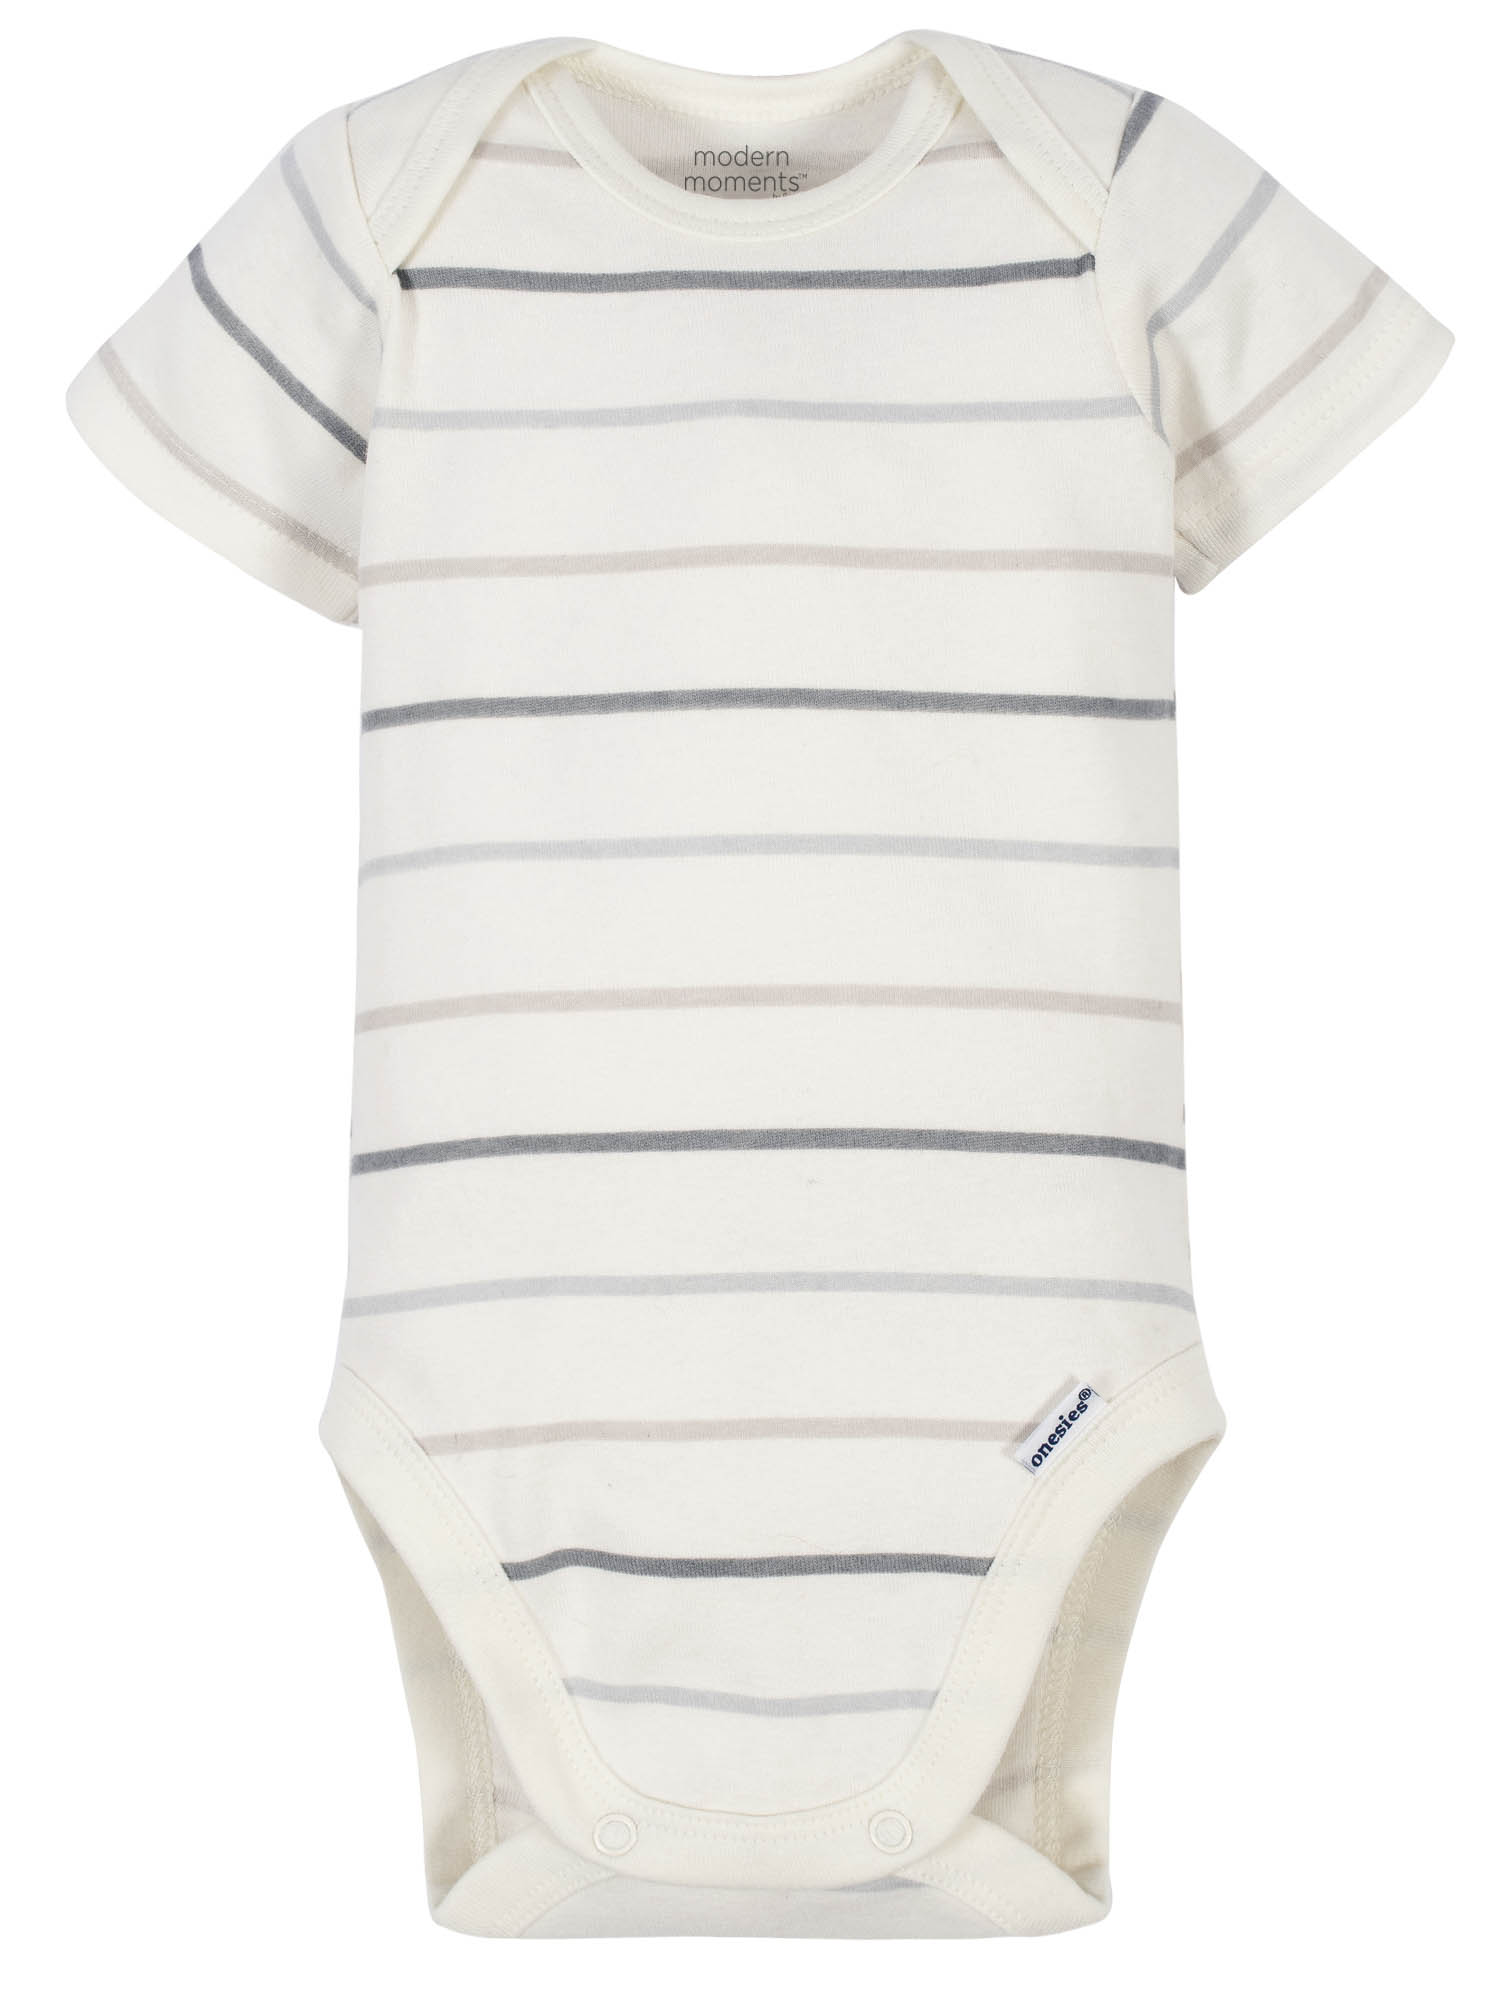 Julhold Newborn Infant Baby Girl Boy Casual Simple Short Sleeve Letter Cotton Romper Bodysuit Clothes Outfits 0-18 Months